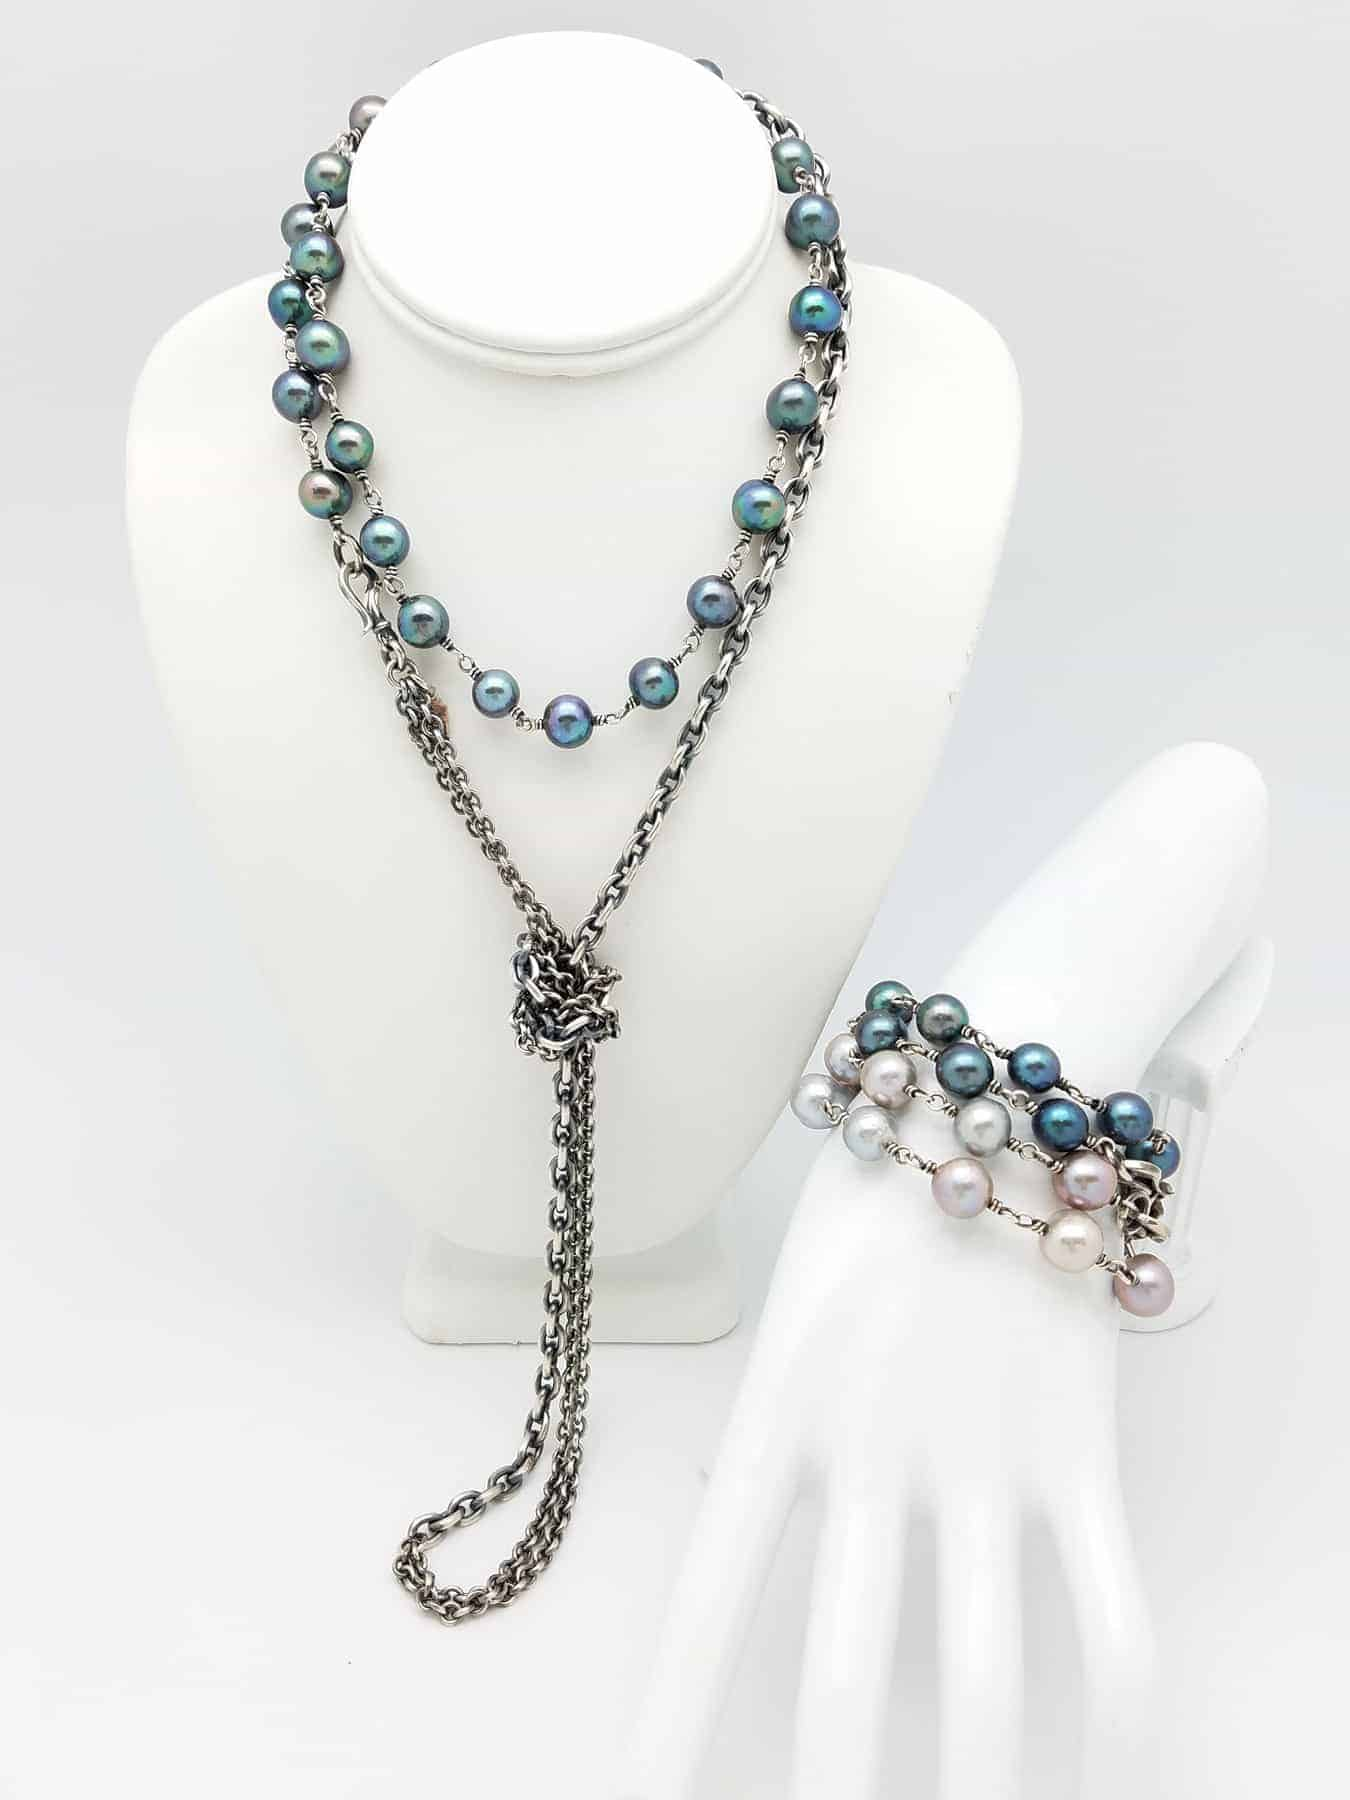 Kary Kjesbo Designs Necklace Brace. Pearls FW peacock and grey